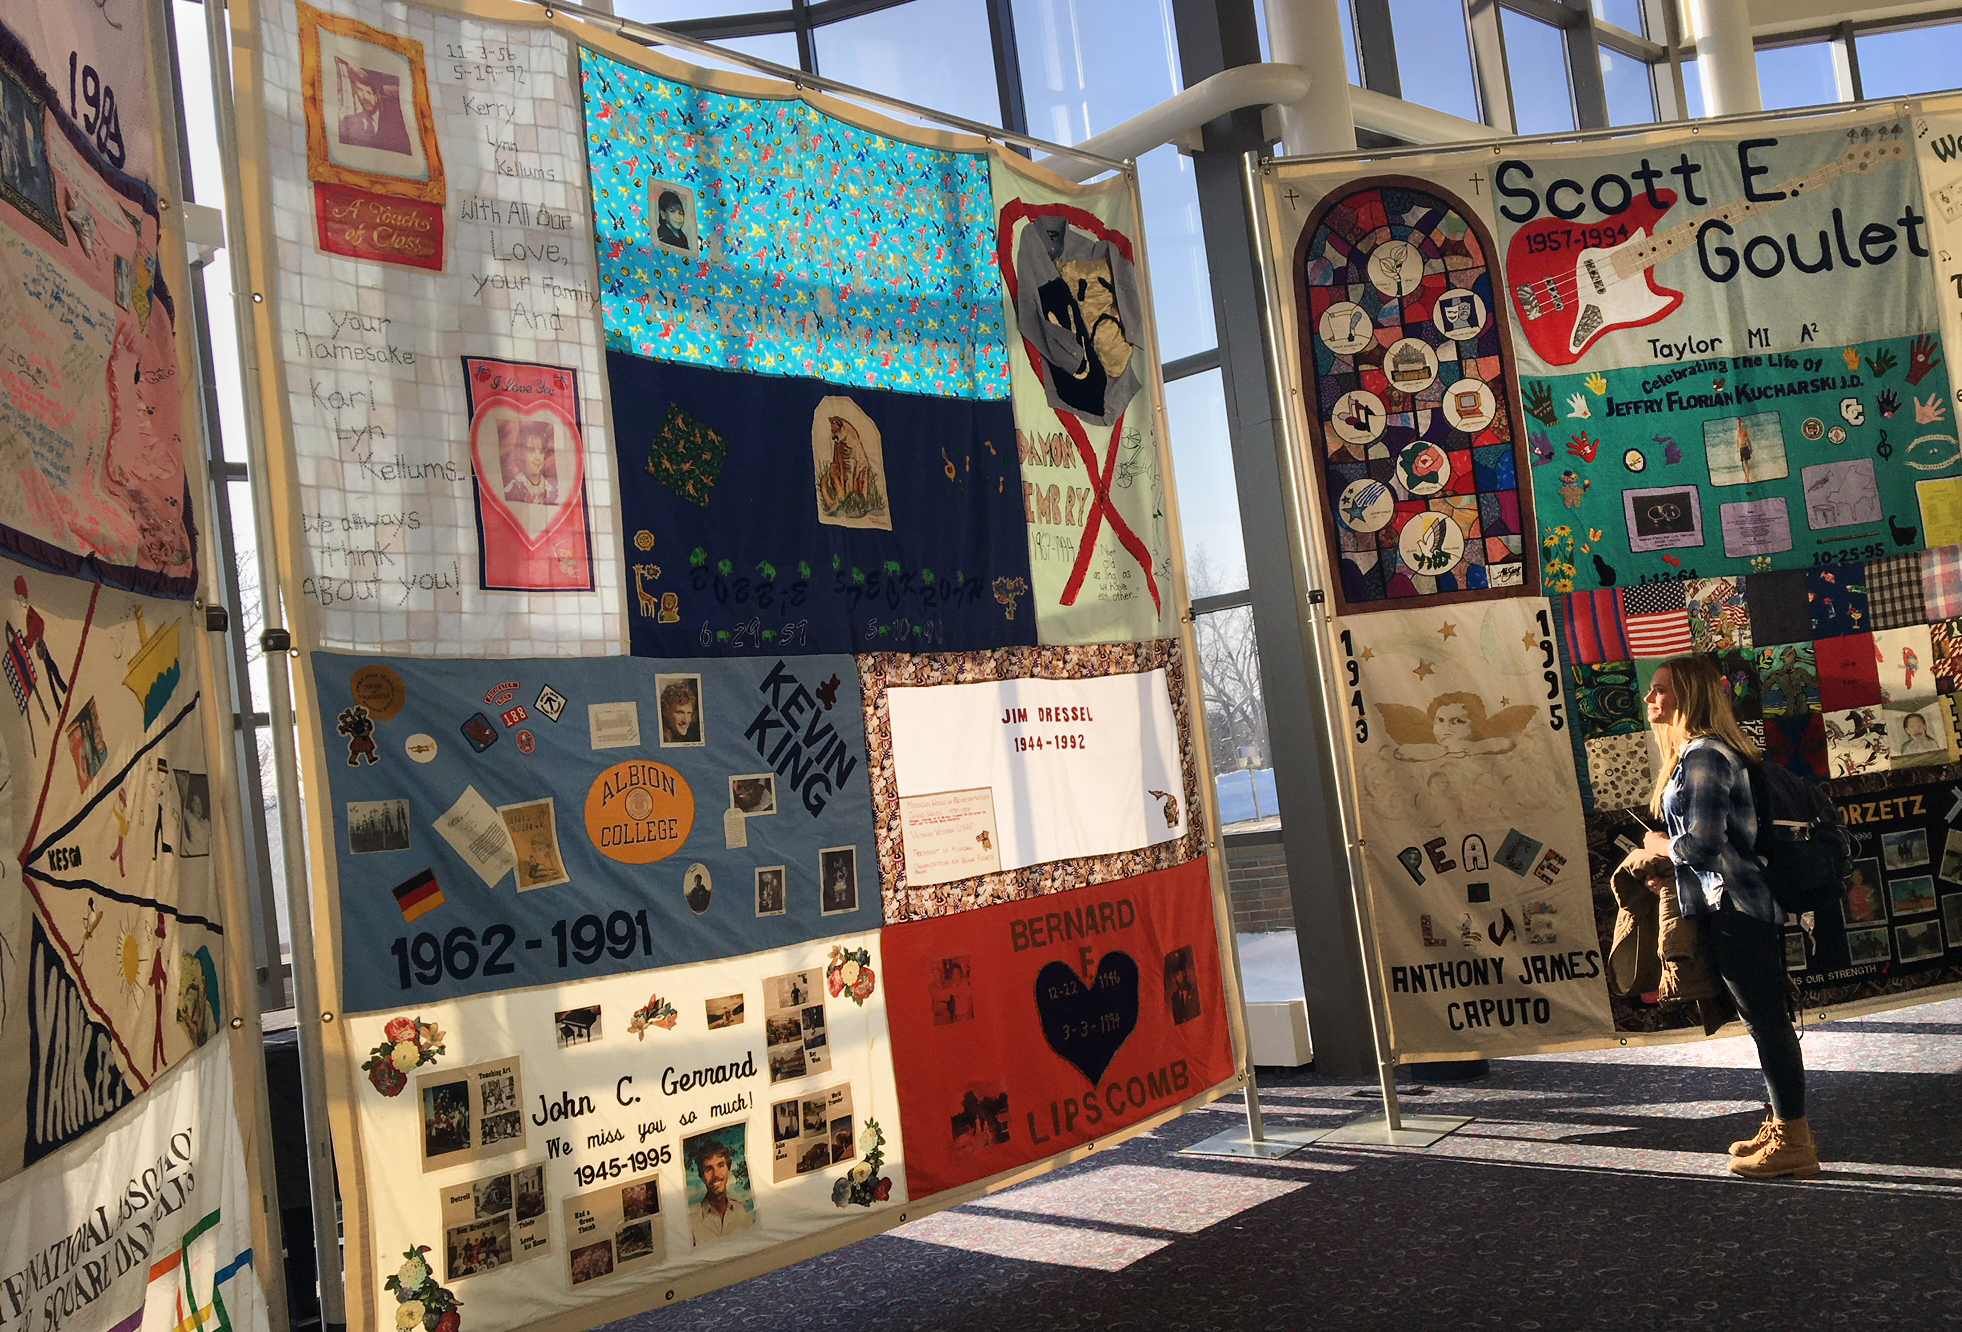 Panels from the Names Project, also known as the AIDS Quilt, on display in the Gilmore Theatre Complex Atrium